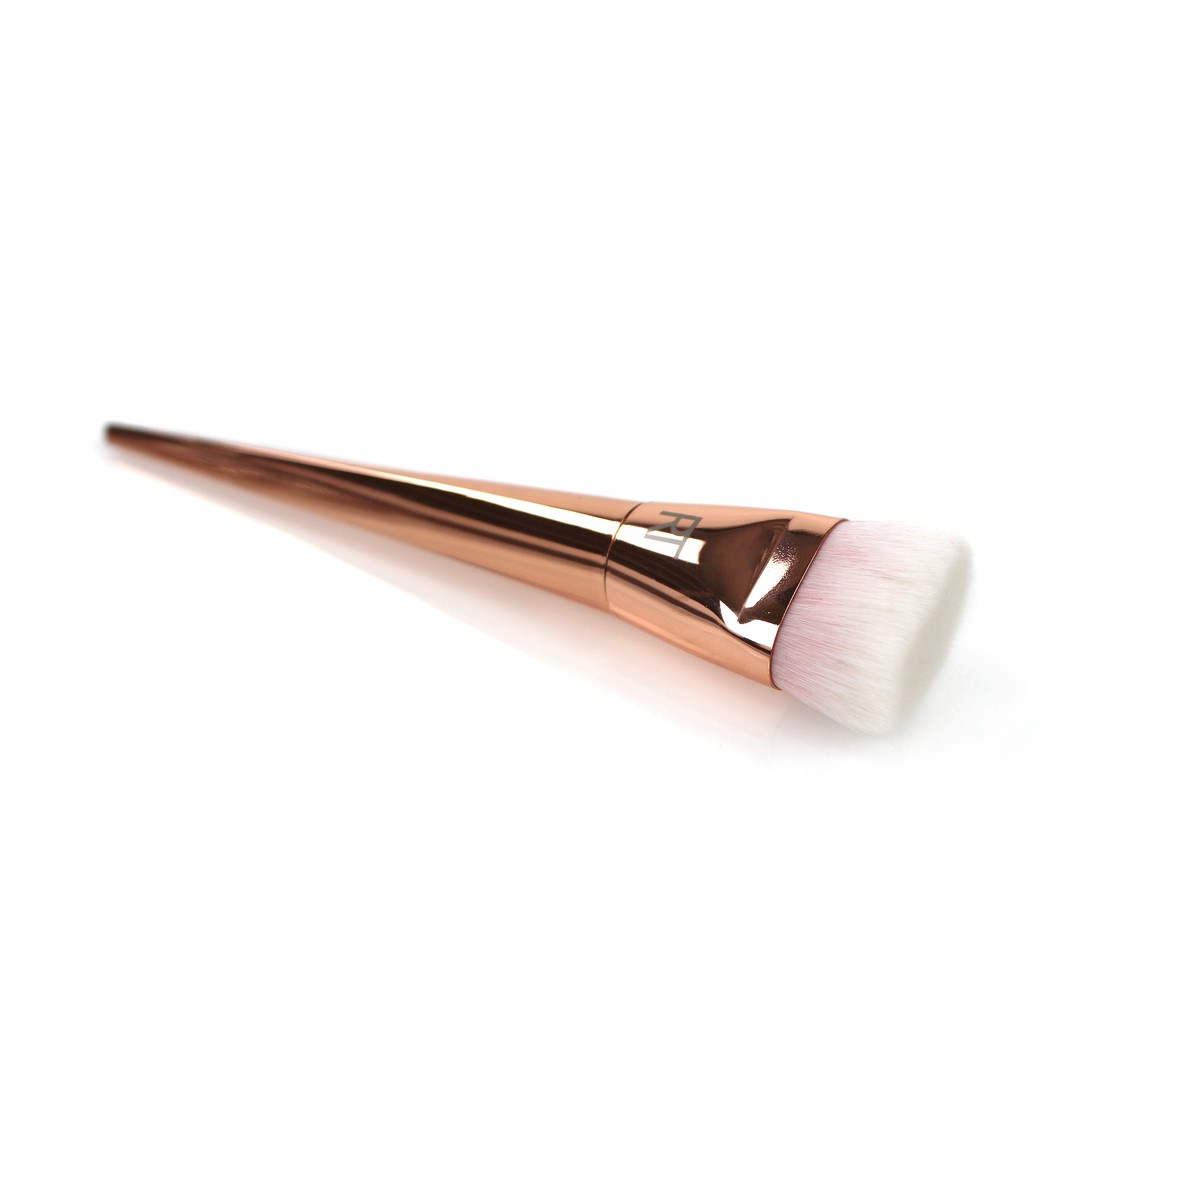 Flacher Contour-Pinsel - Bold Metals Collection - 301 Flat Contour